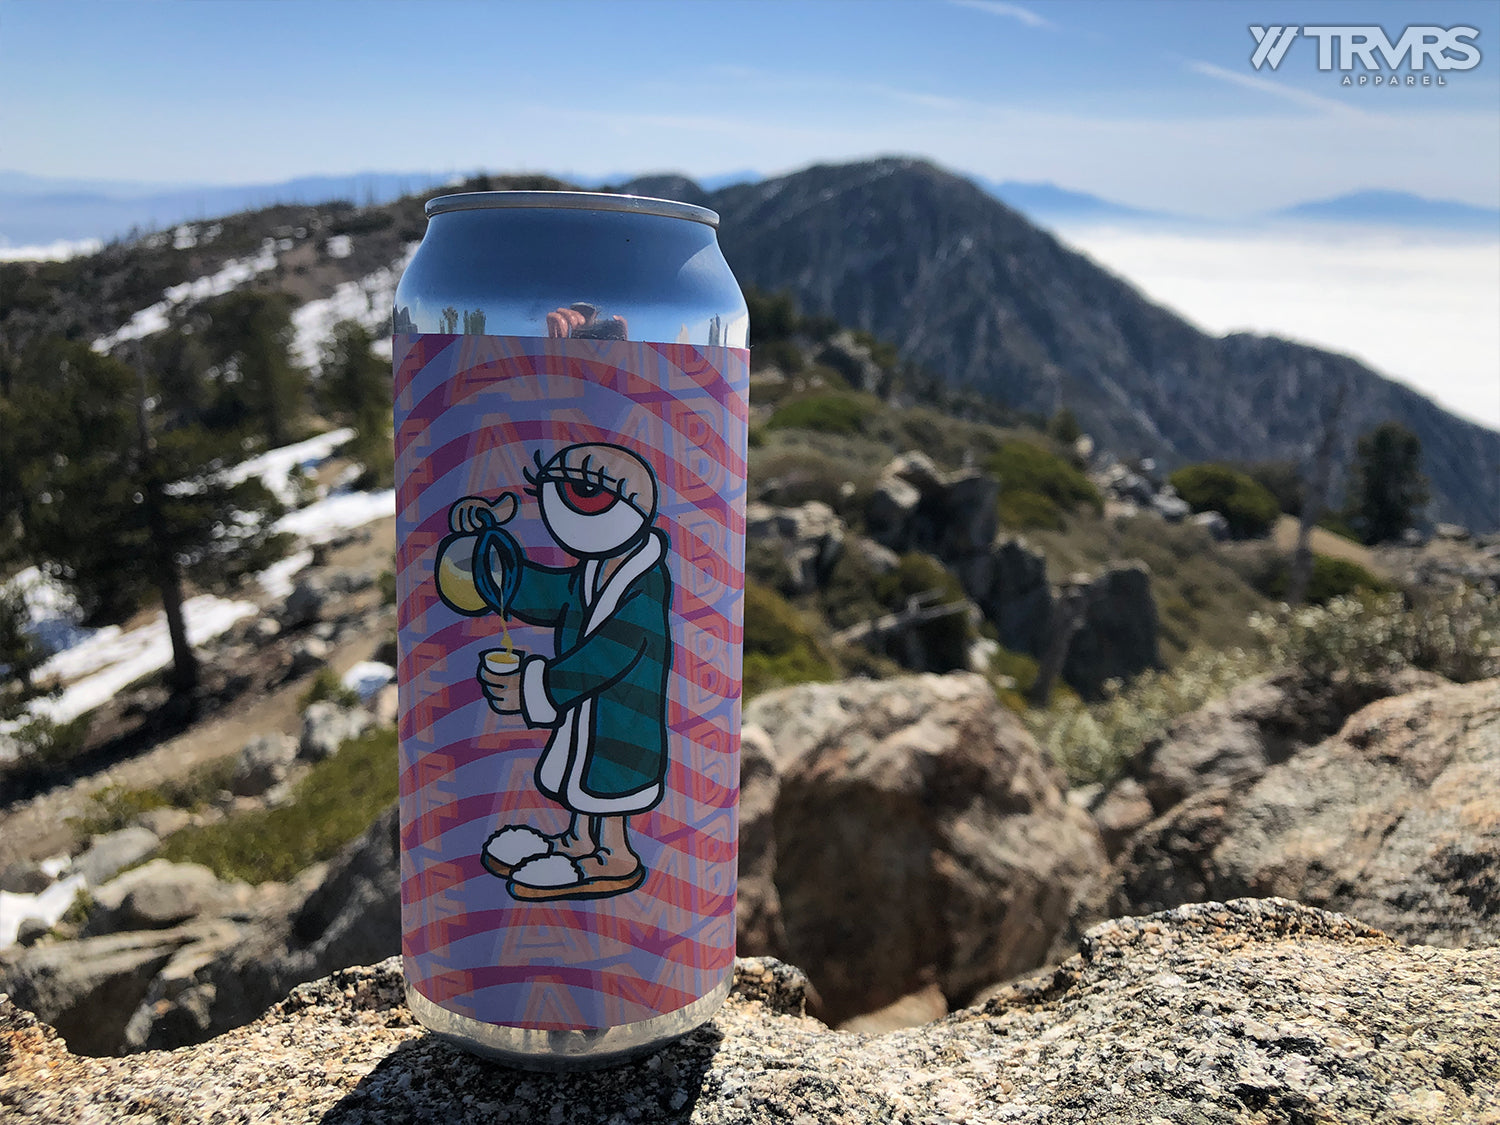 arrow-lodge-brewing-beer-Ontario Peak via Falling Rock Canyon - Angeles National Forest - San Gabriel Mountain Range - TRVRS APPAREL - Clothing Brand